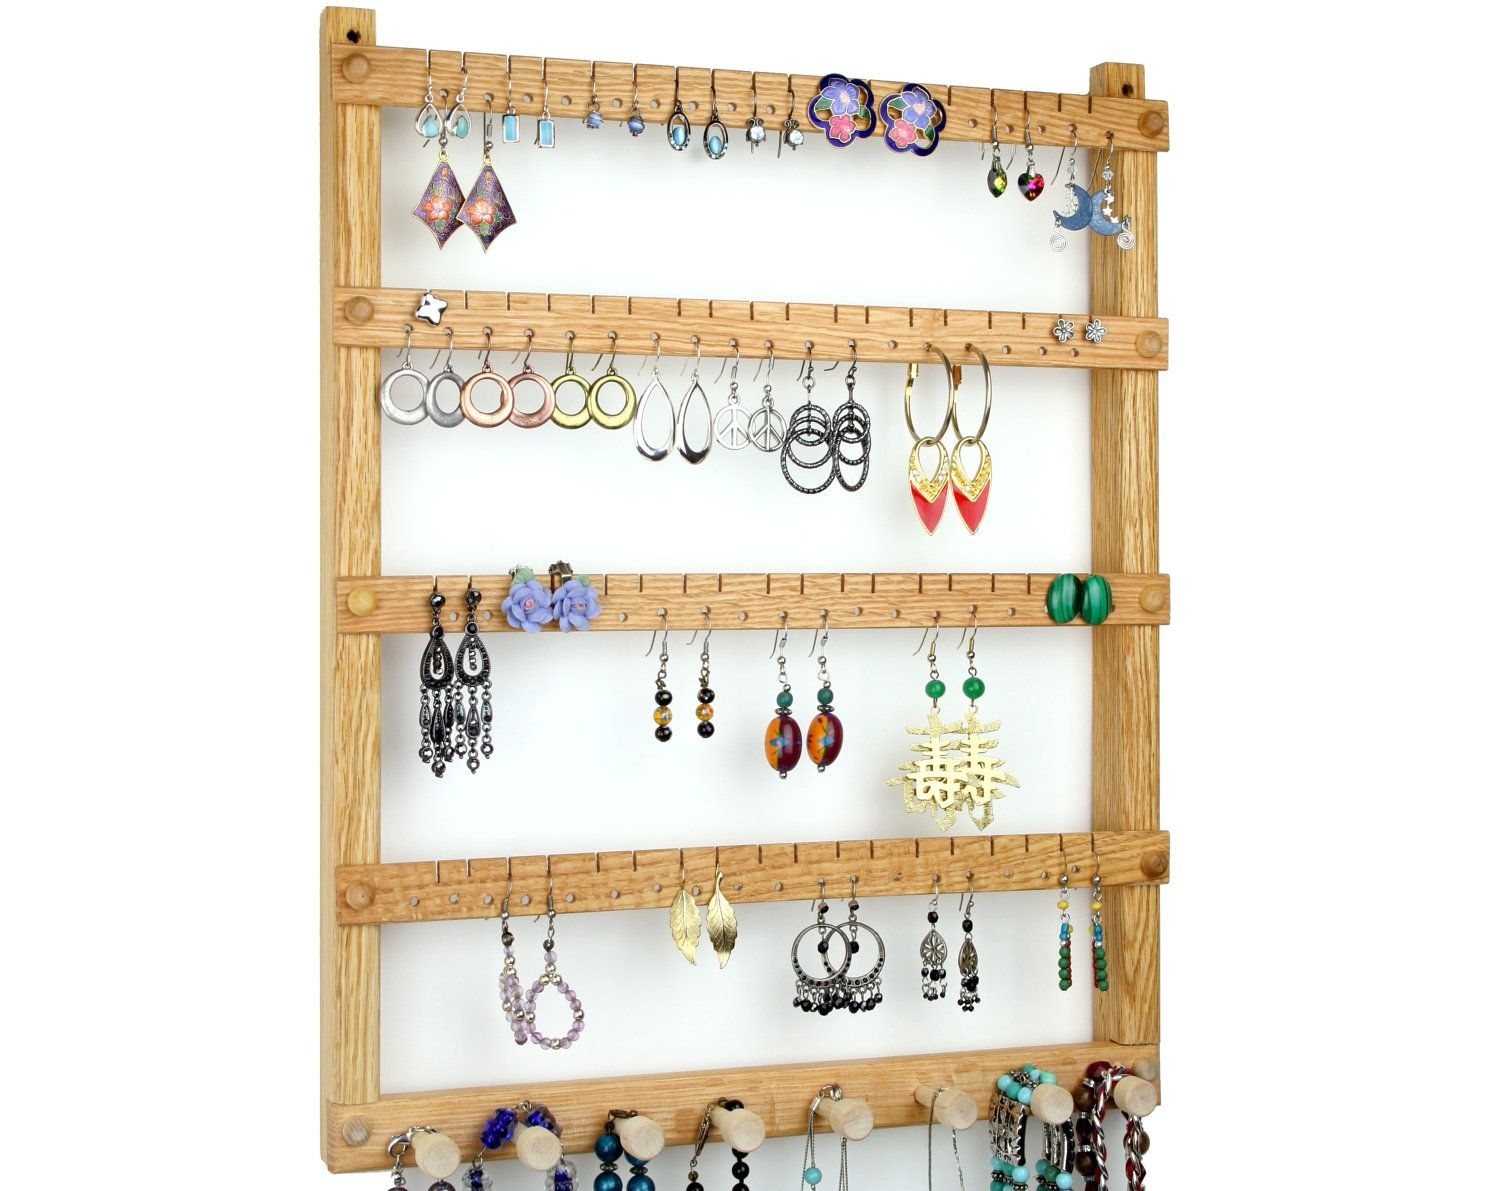 Oak Wood Wall Mount Earring Holder With Necklace, Bracelet Jewelry  Organizer. Holds Up To